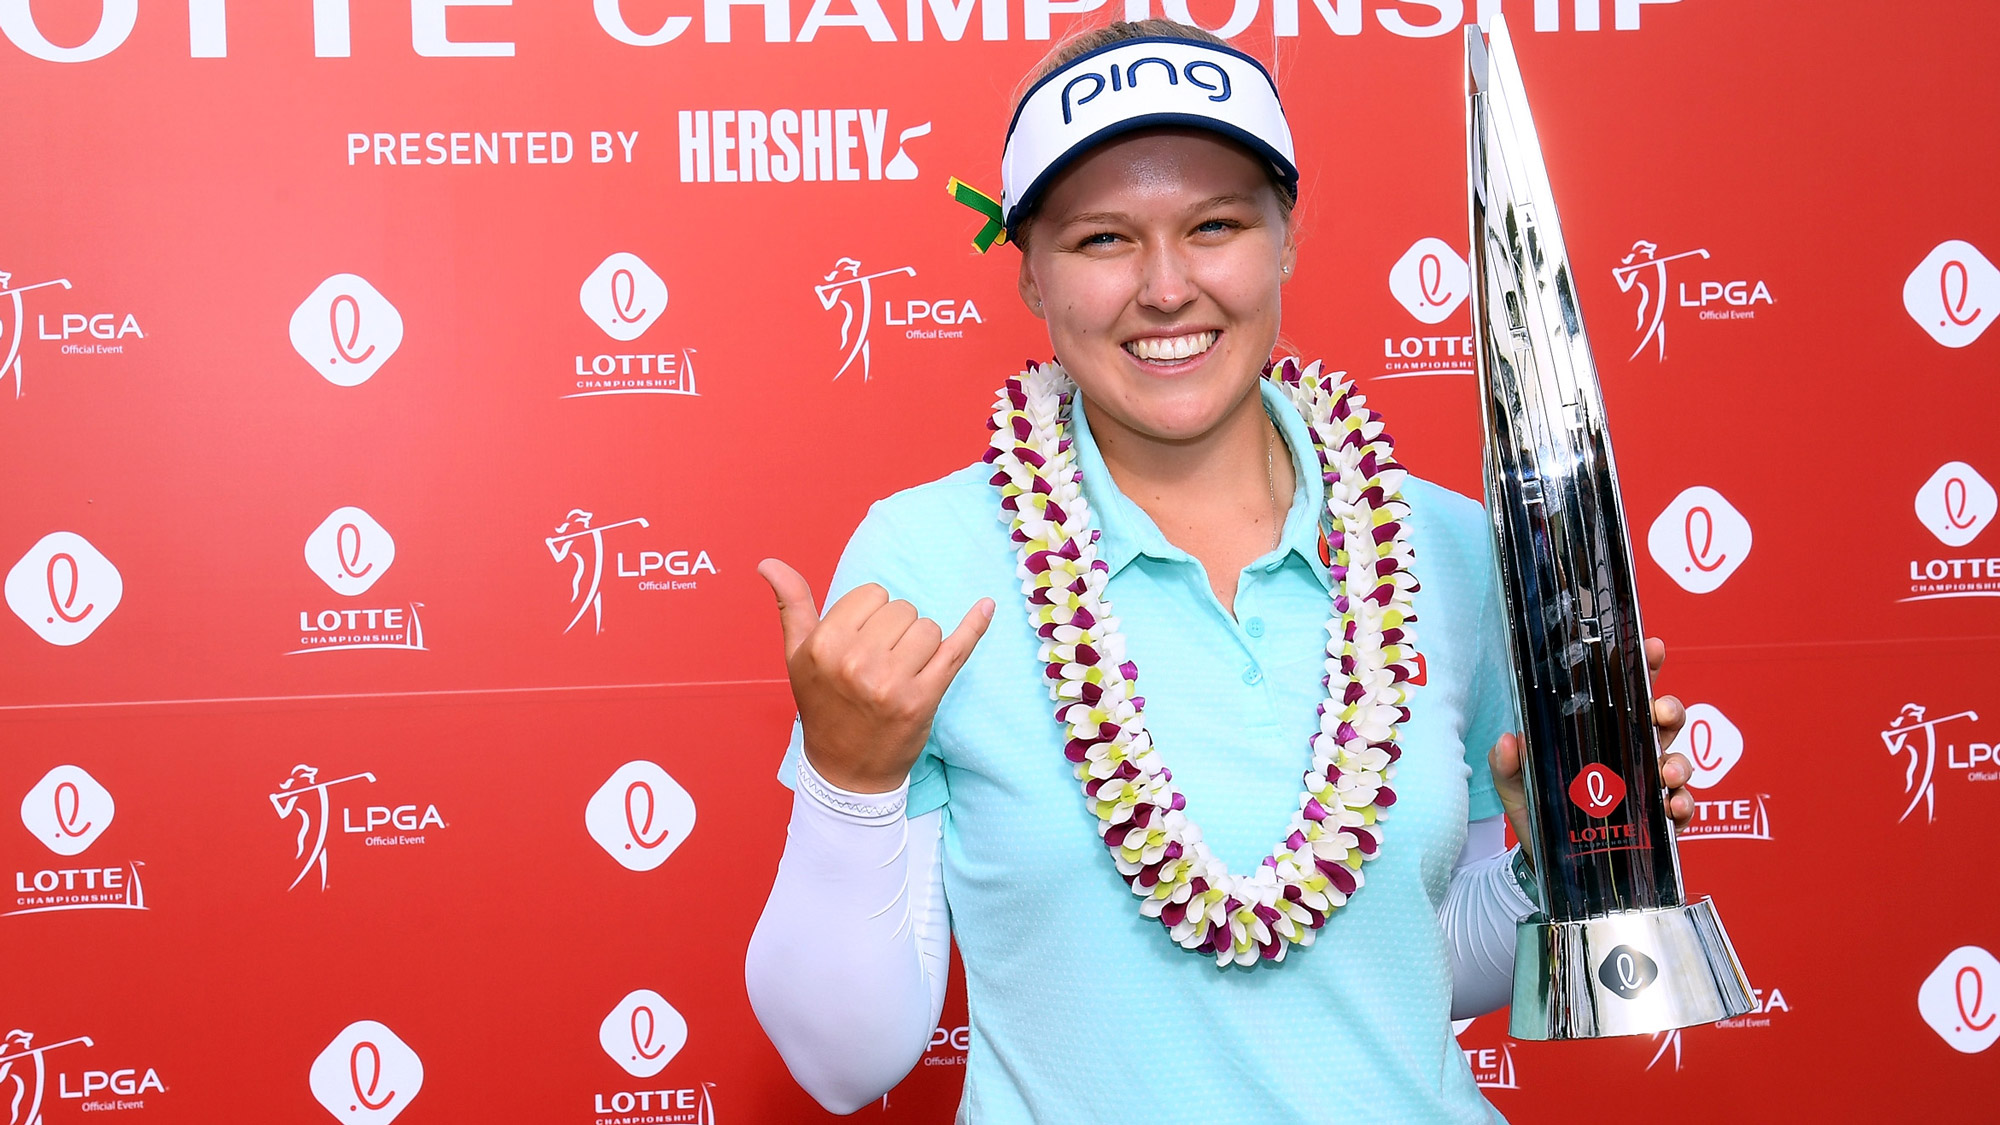 Defending champion Brooke Henderson